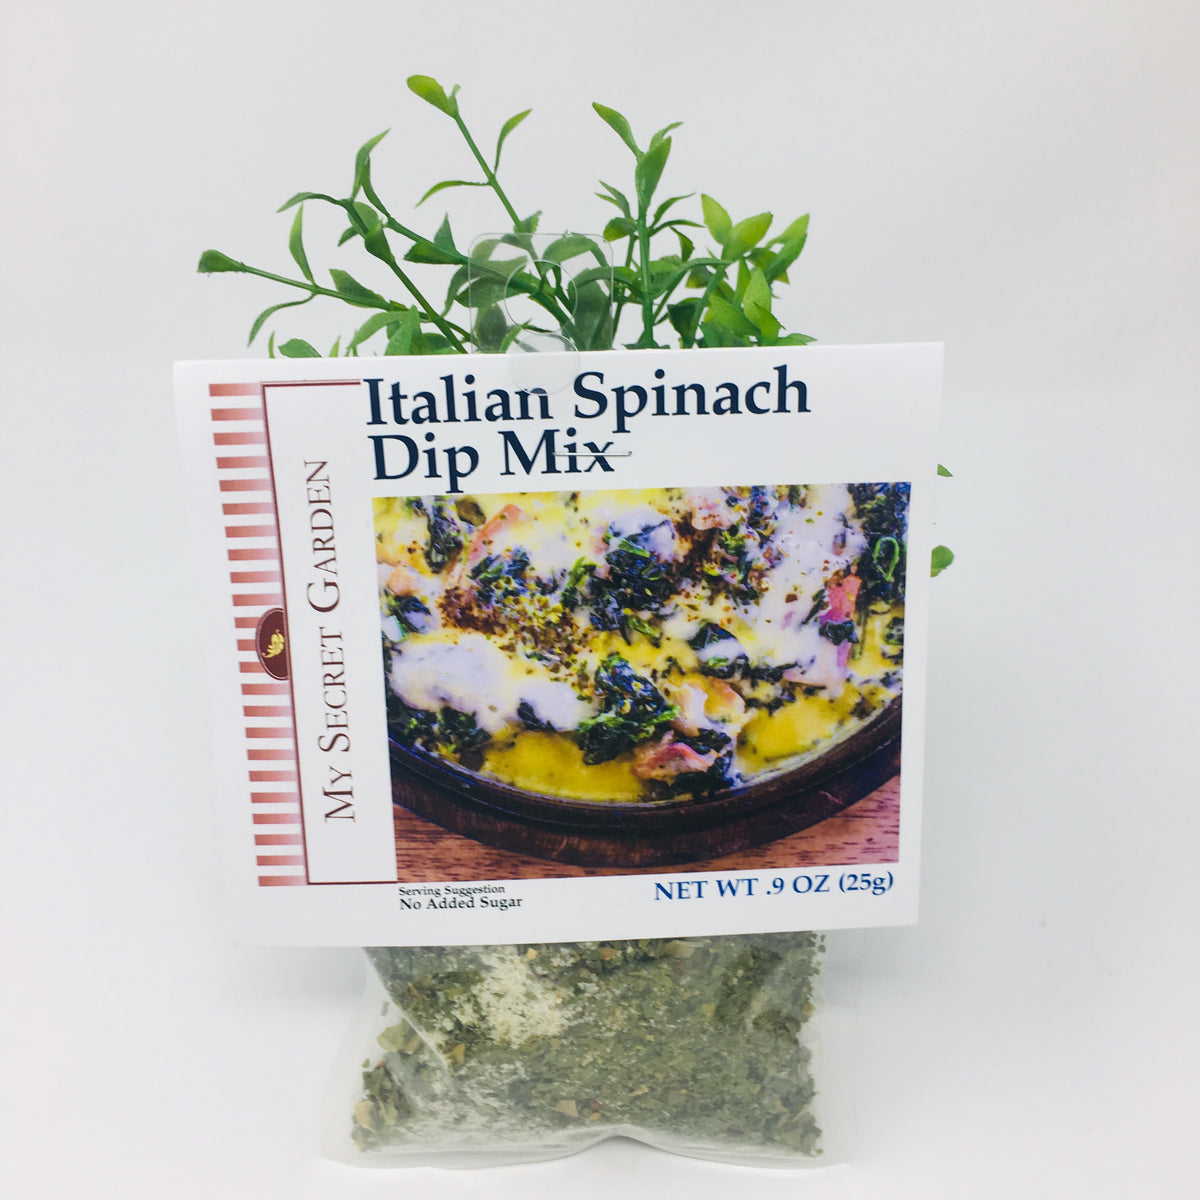 Italian Spinach Dip Mix